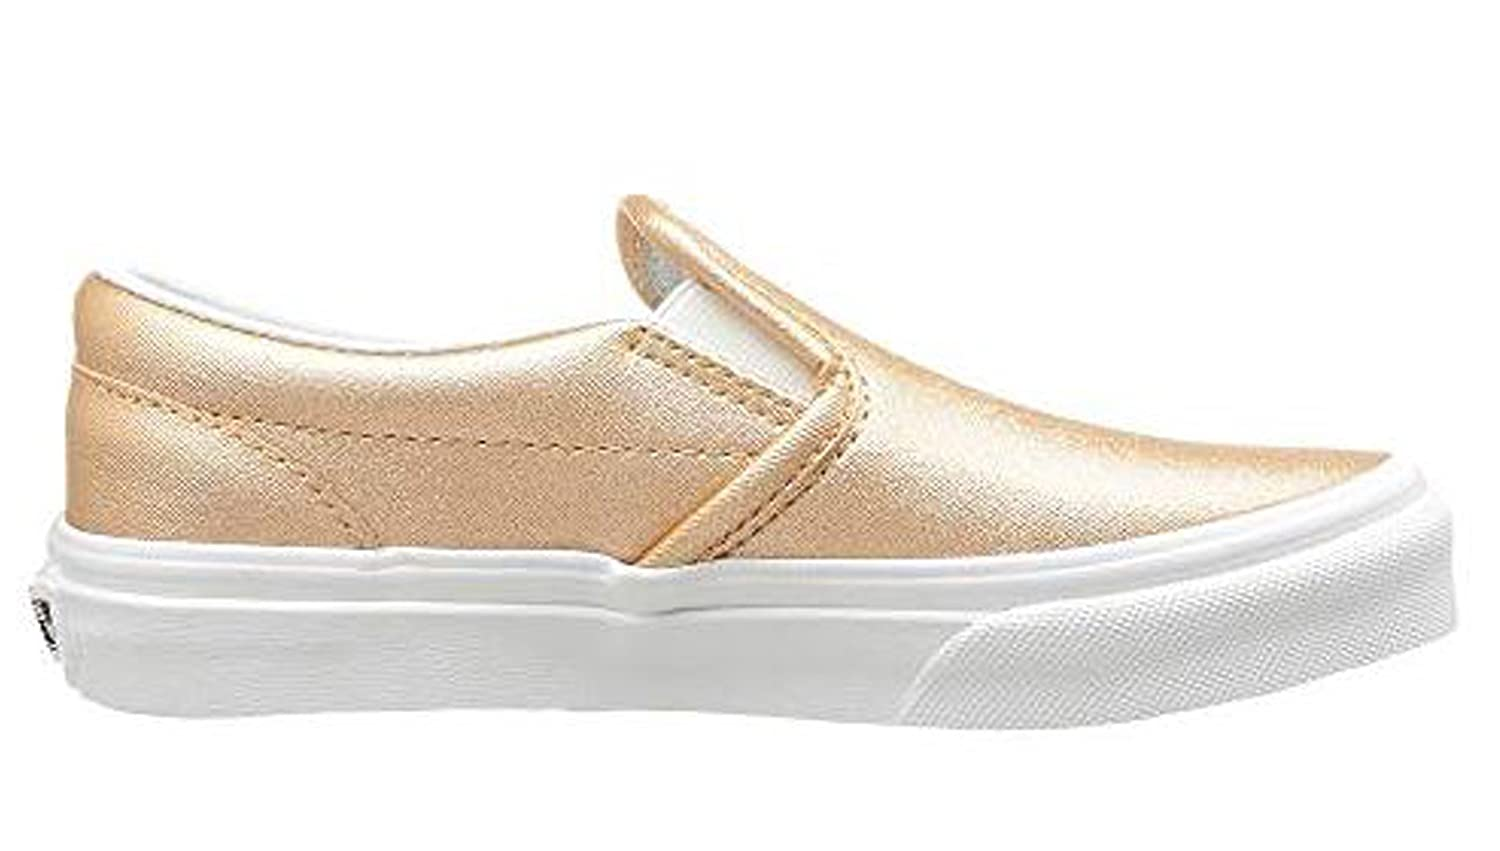 Vans Classic Slip-On (Metallic Leather) Light Copper Big Kids 4   Amazon.co.uk  Shoes   Bags 6a73dcd79